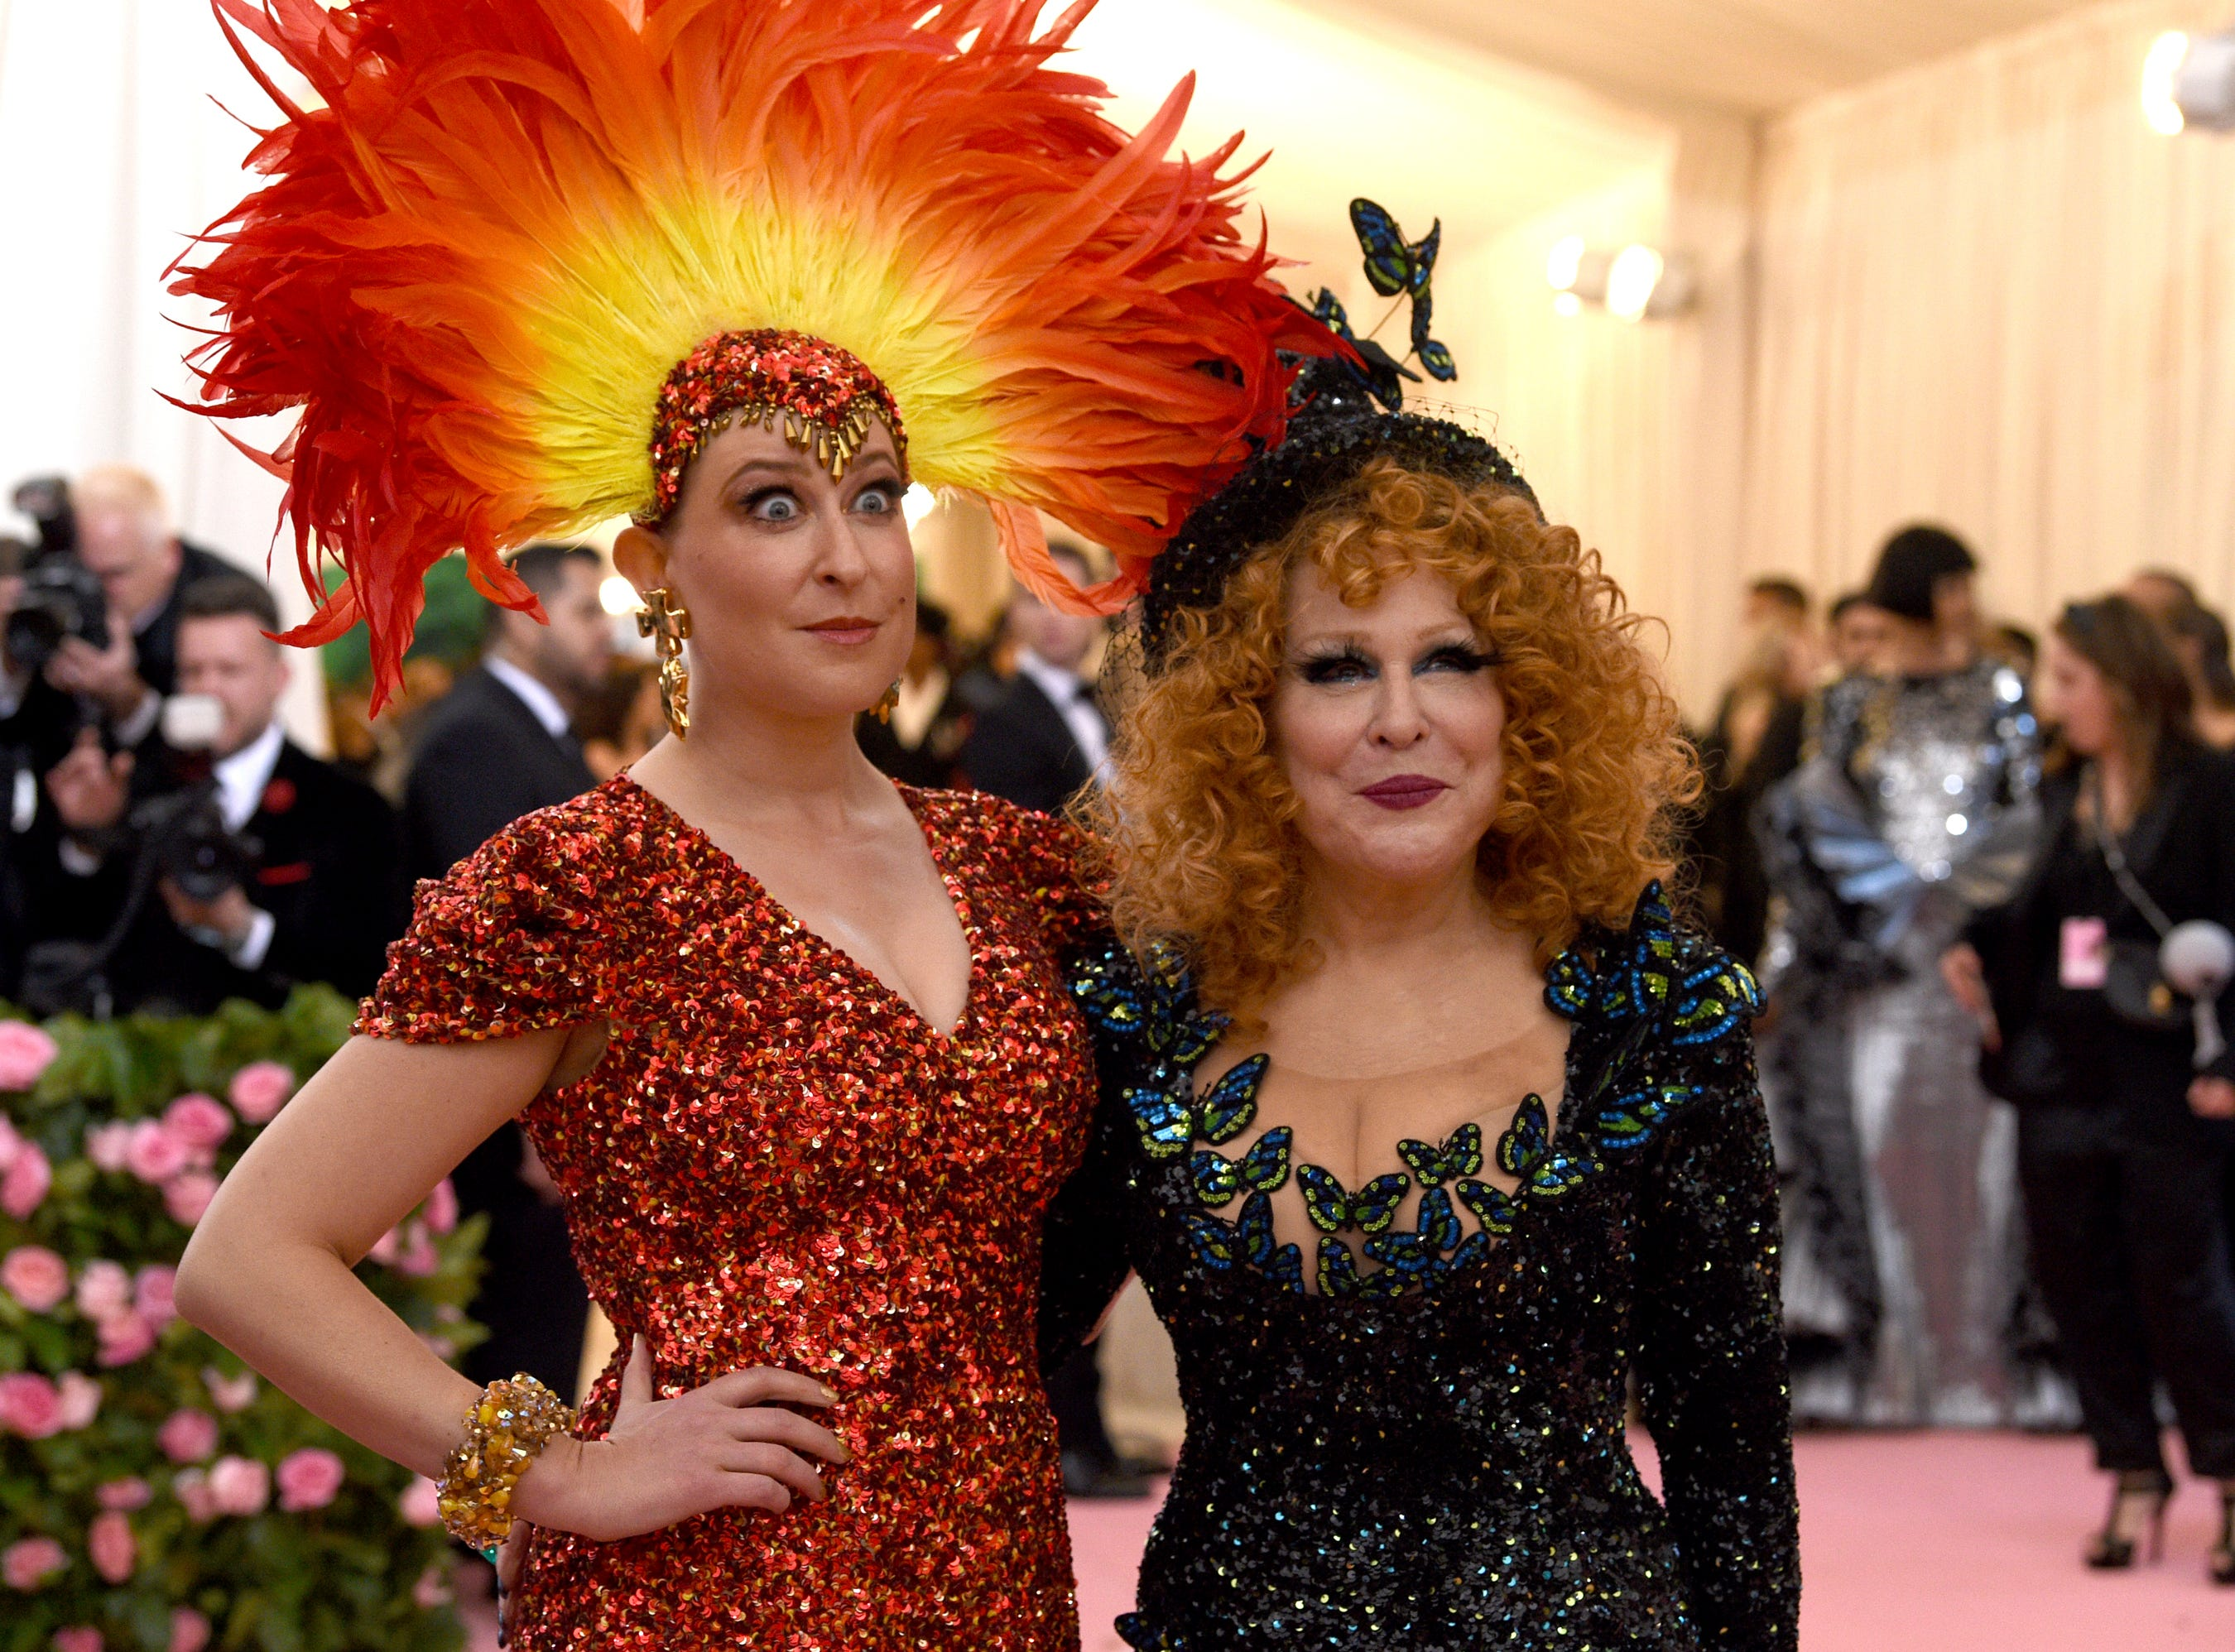 """Bette Midler, right, and her daughter Sophie Von Haselberg attend The Metropolitan Museum of Art's Costume Institute benefit gala celebrating the opening of the """"Camp: Notes on Fashion"""" exhibition on Monday, May 6, 2019, in New York. (Photo by Evan Agostini/Invision/AP) ORG XMIT: NYKV265"""